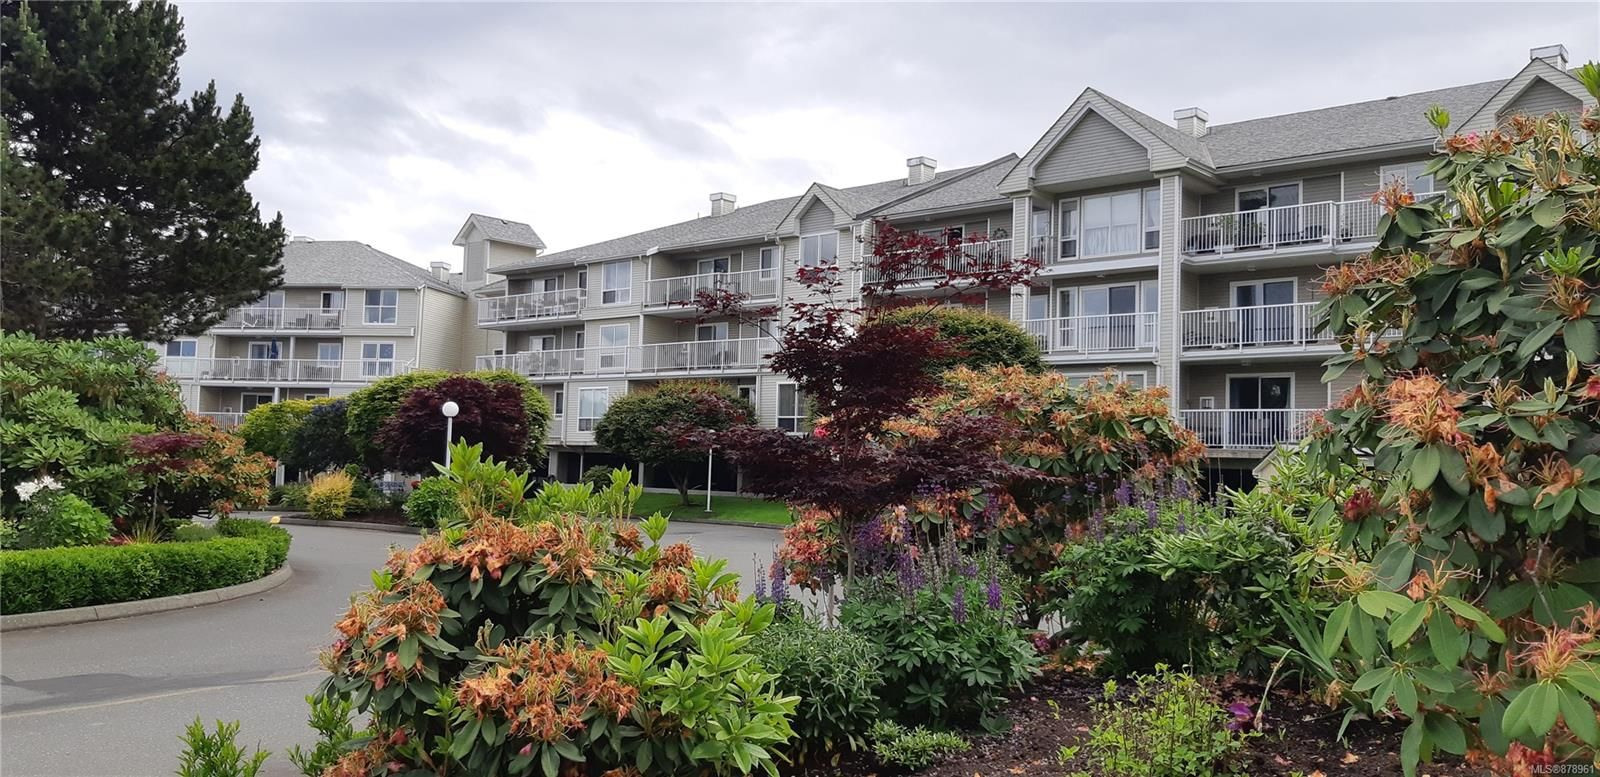 Main Photo: 215 155 Erickson Rd in : CR Willow Point Condo for sale (Campbell River)  : MLS®# 878961